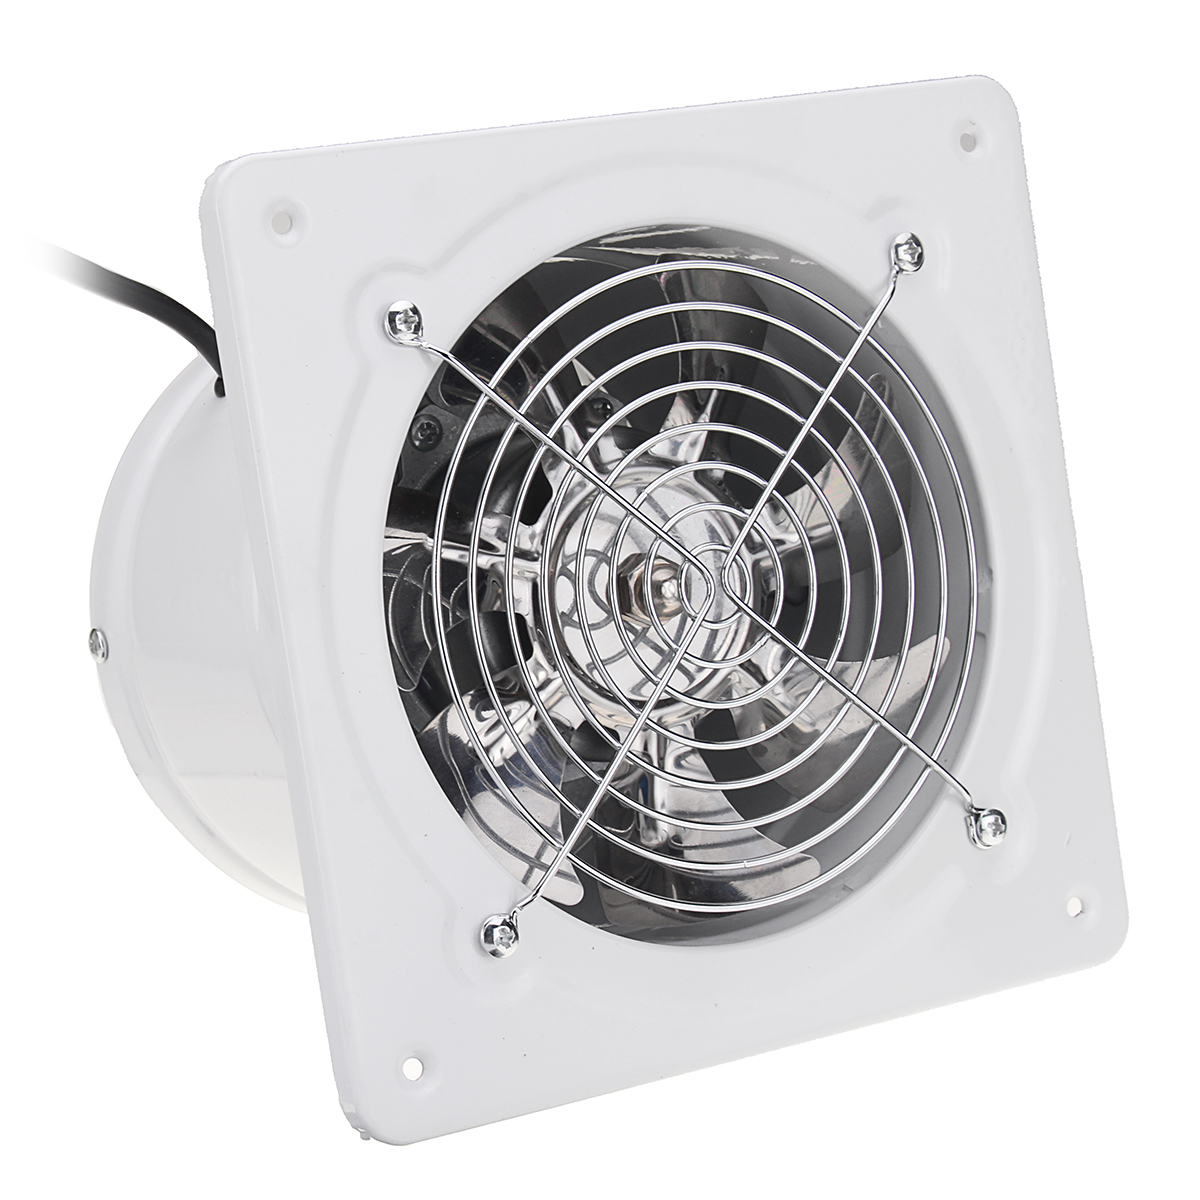 6 Inch 40W Inline Duct Booster Fan Extractor Exhaust an